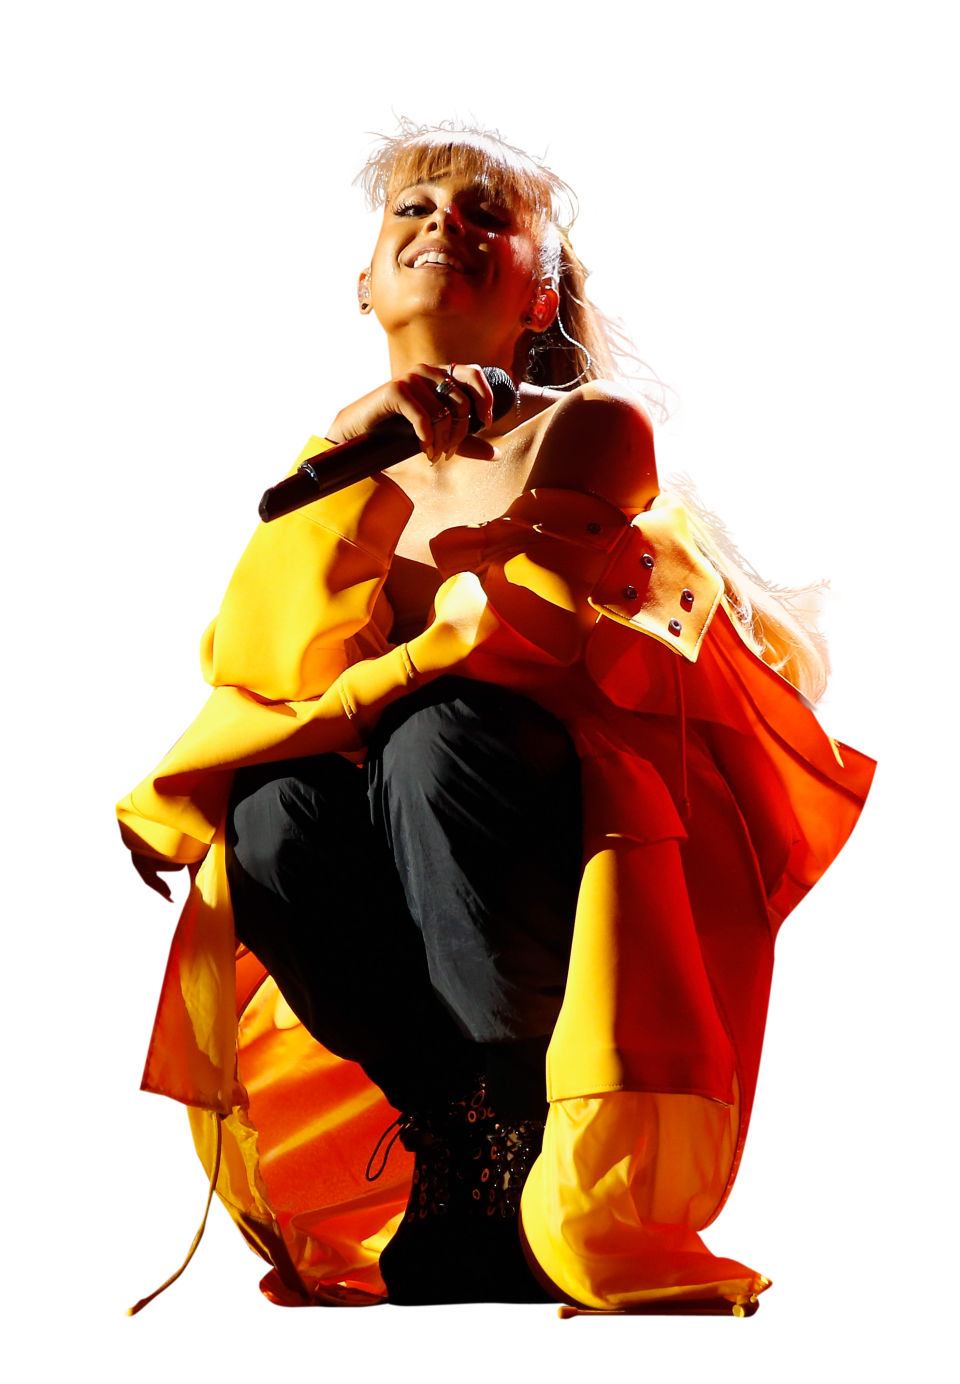 Ariana Grande in yellow dress on stage PNG Image